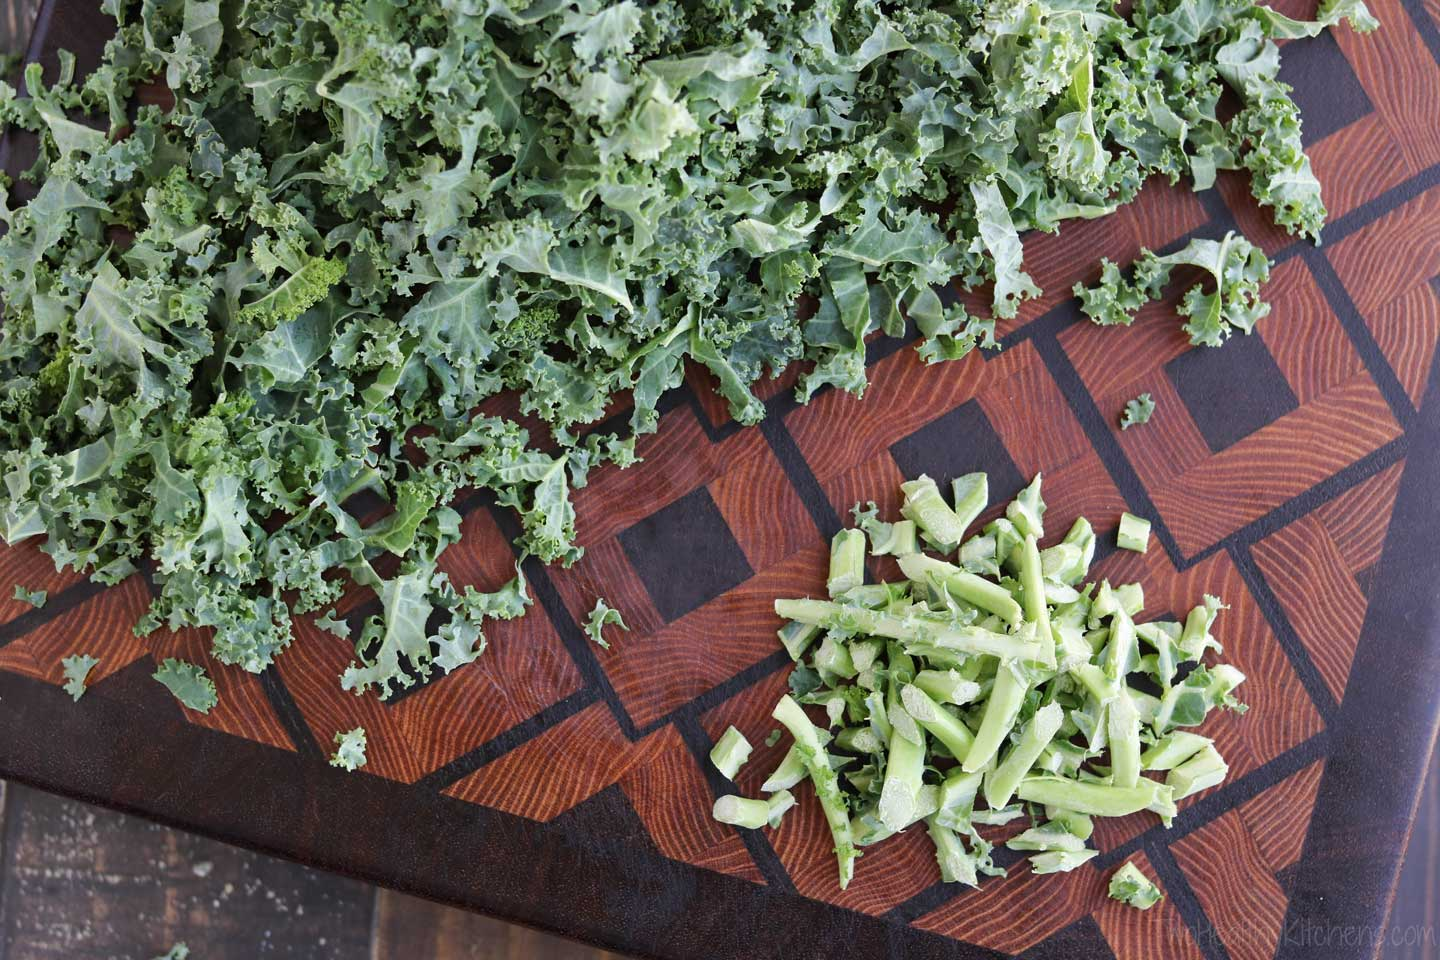 To prepare the kale for our Tuscan Kale Salad, start by removing any tough kale stems.